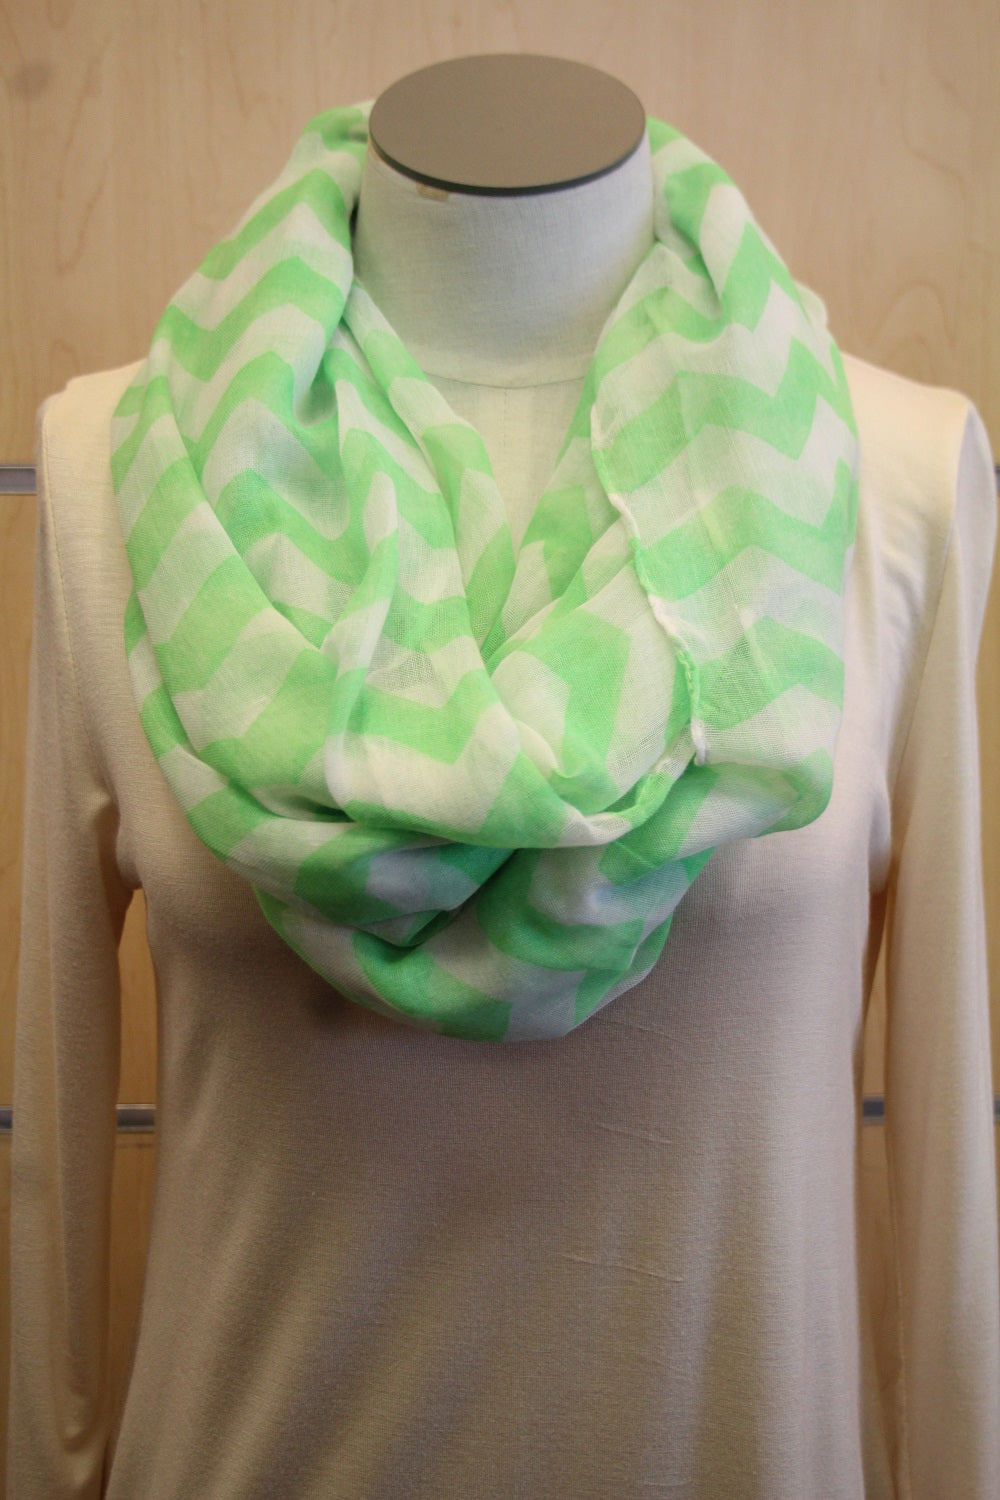 ADO | Infinity Green and White Chevron Scarf - All Decd Out